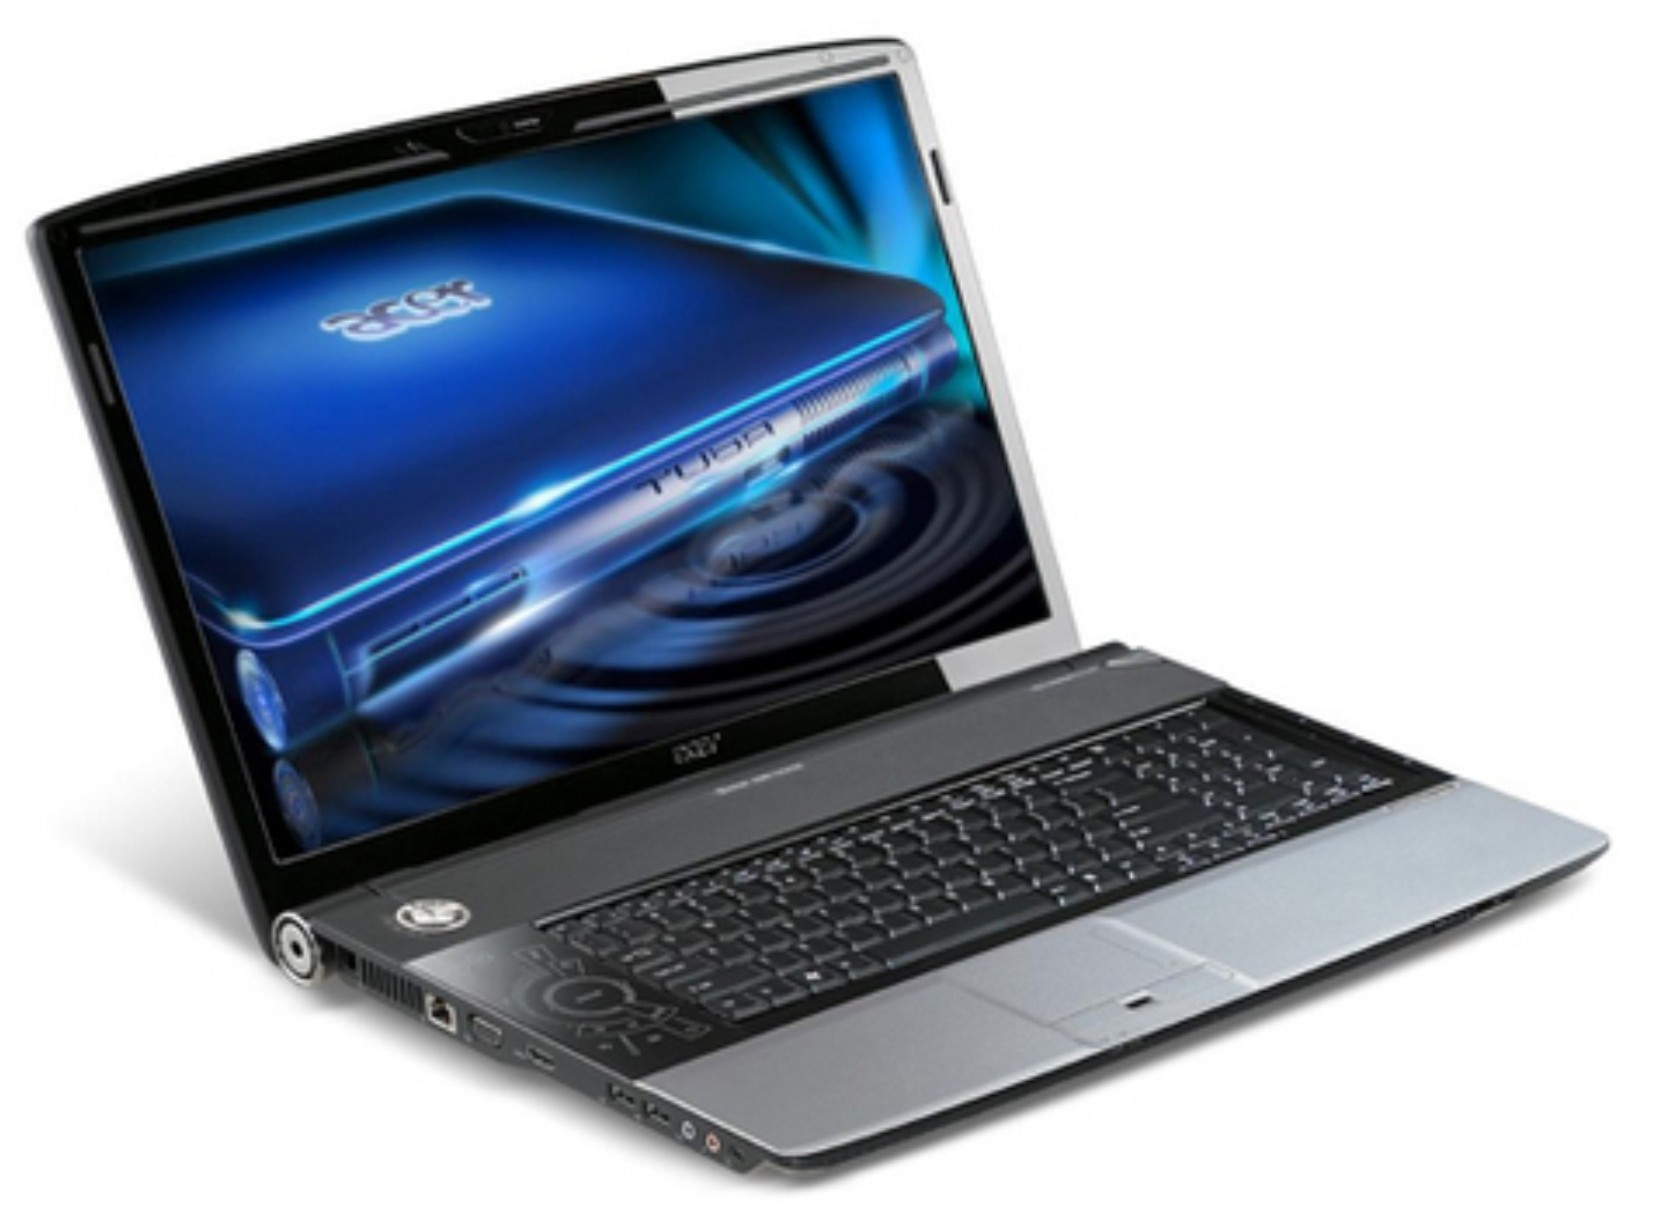 acer aspire 8920g service manual download